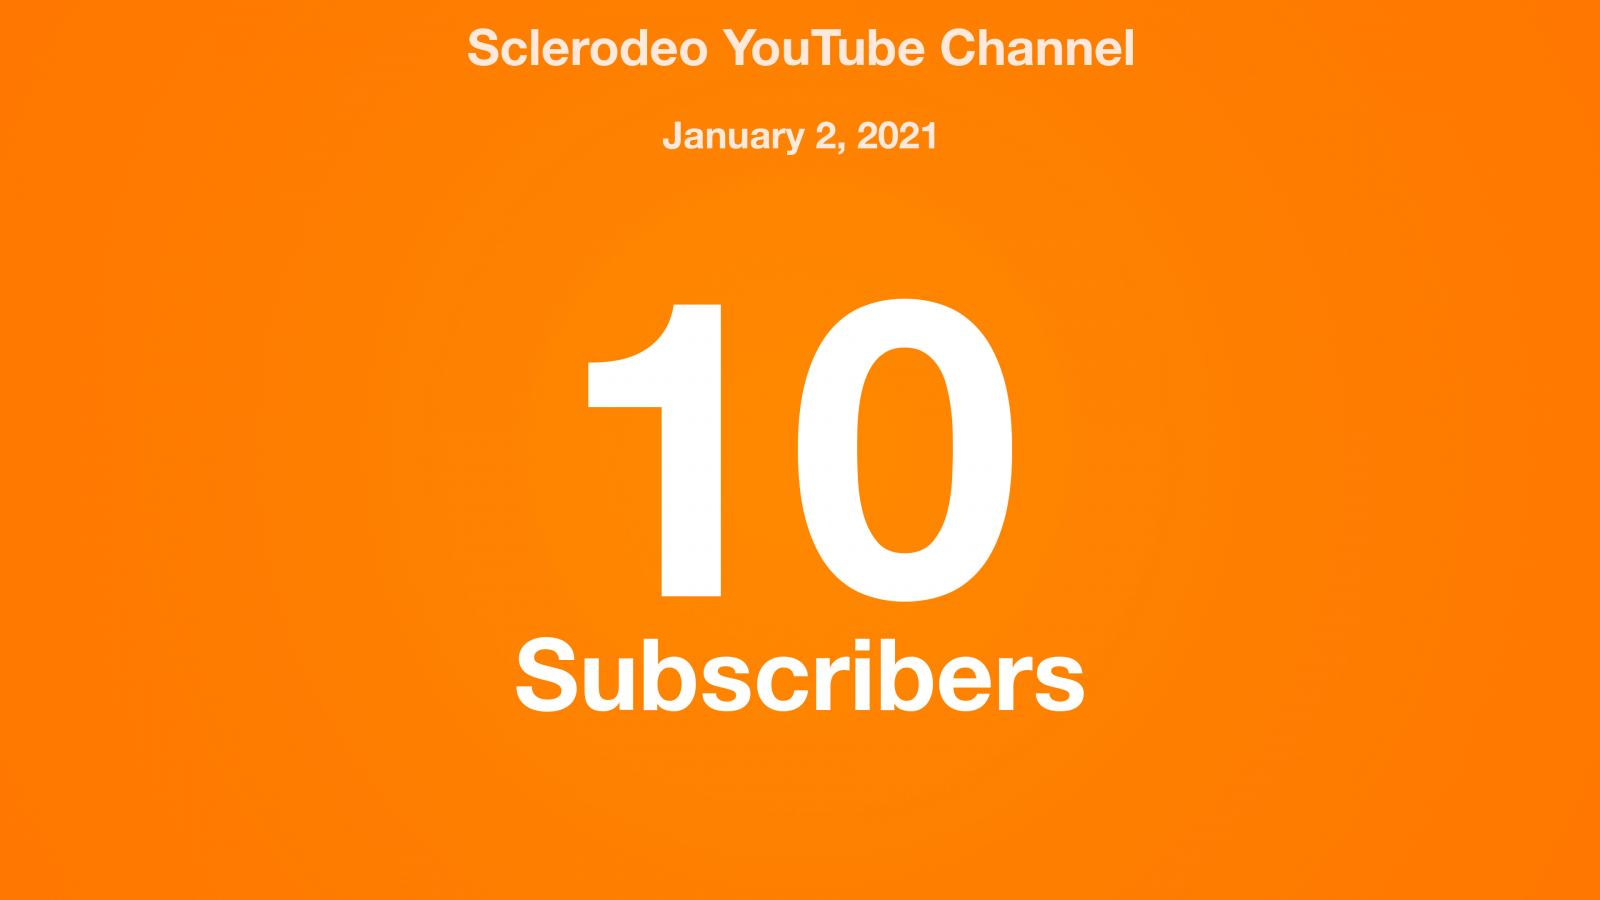 Sclerodeo YouTube Channel, January 2, 2021, 10 Subscribers